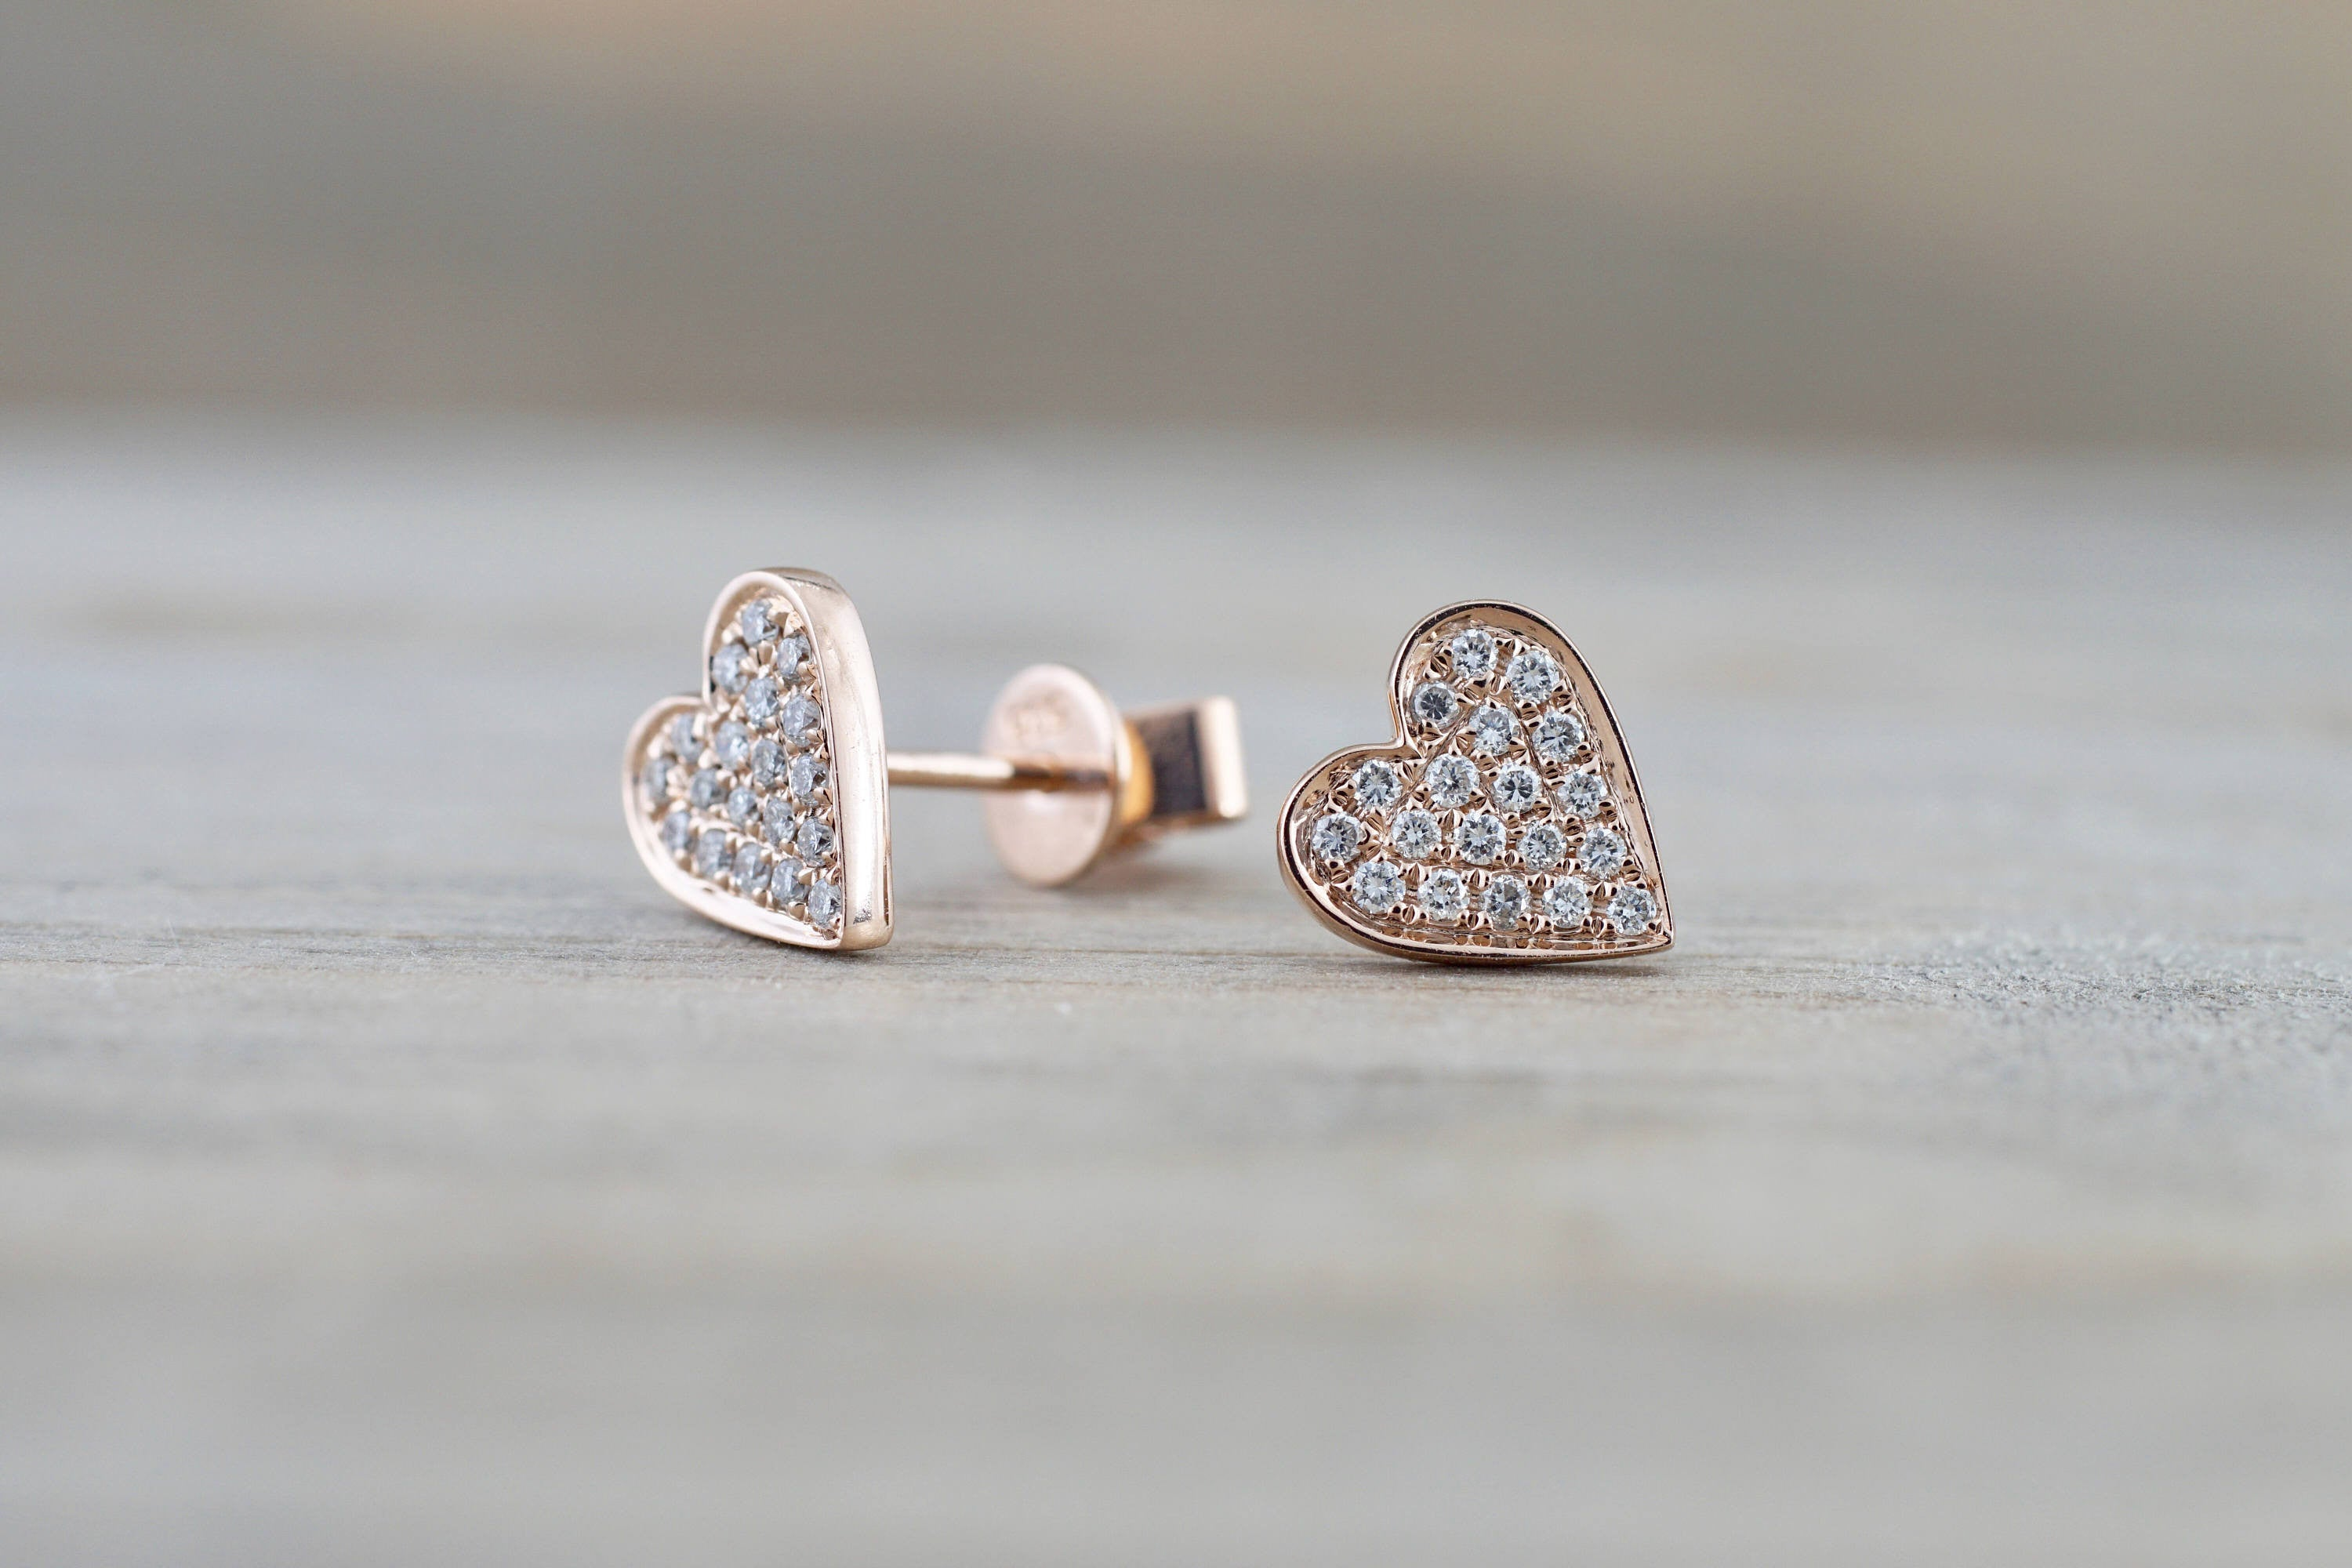 flat pave round heart il post design fullxfull earrings asweetpear studs diamond collections disk micro stud gold rose